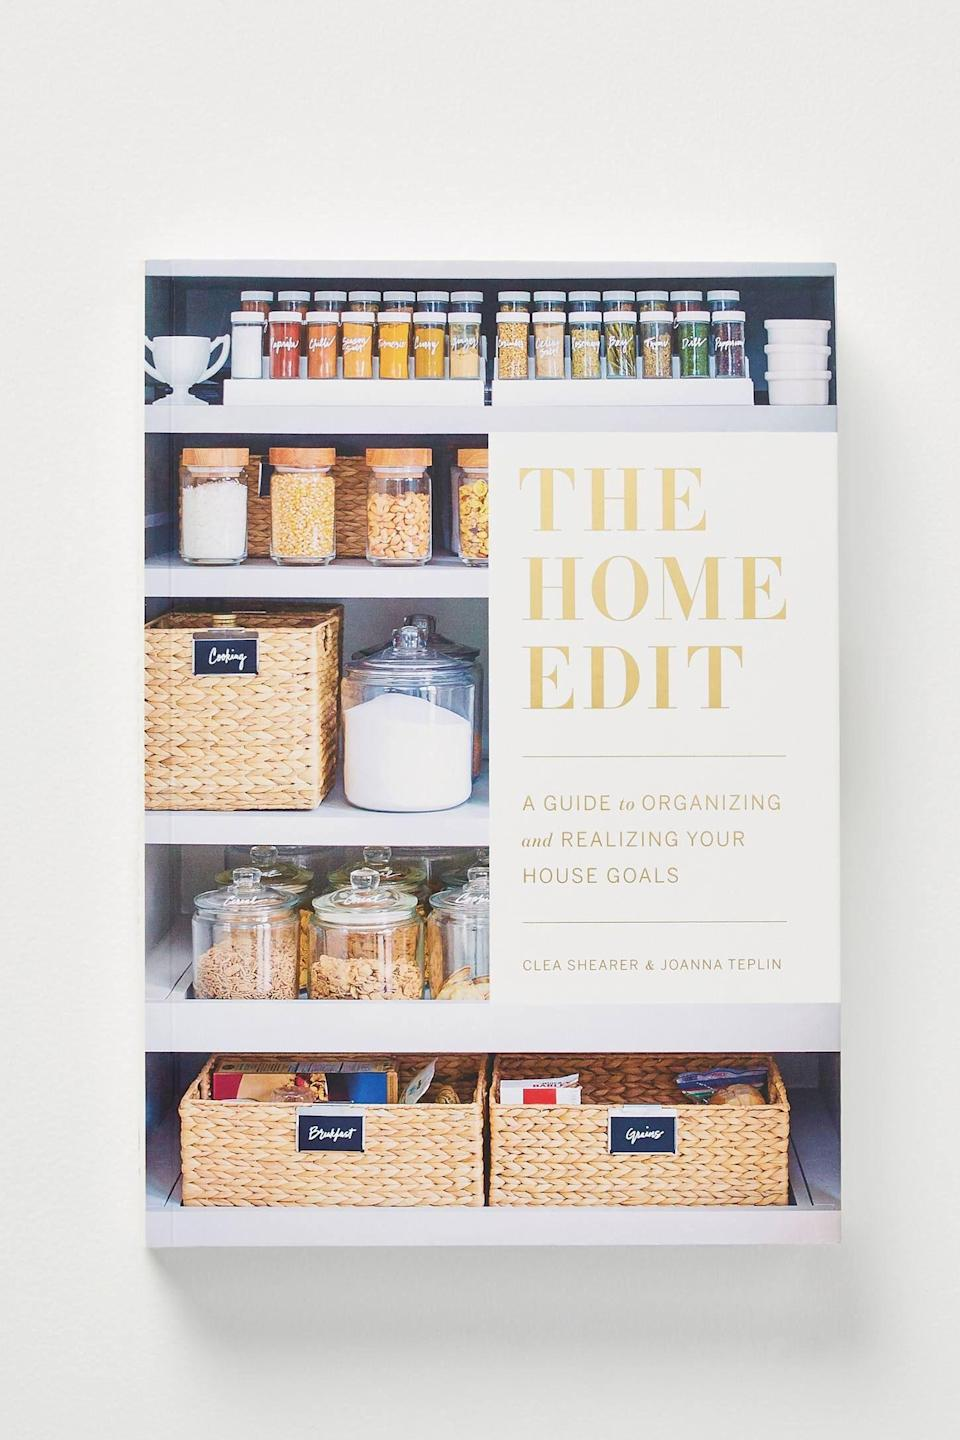 """<p><strong>Anthropologie</strong></p><p>anthropologie.com</p><p><strong>$24.99</strong></p><p><a href=""""https://go.redirectingat.com?id=74968X1596630&url=https%3A%2F%2Fwww.anthropologie.com%2Fshop%2Fthe-home-edit2&sref=https%3A%2F%2Fwww.goodhousekeeping.com%2Fhome%2Fdecorating-ideas%2Fg35431506%2Fbest-interior-design-books%2F"""" rel=""""nofollow noopener"""" target=""""_blank"""" data-ylk=""""slk:Shop Now"""" class=""""link rapid-noclick-resp"""">Shop Now</a></p>"""